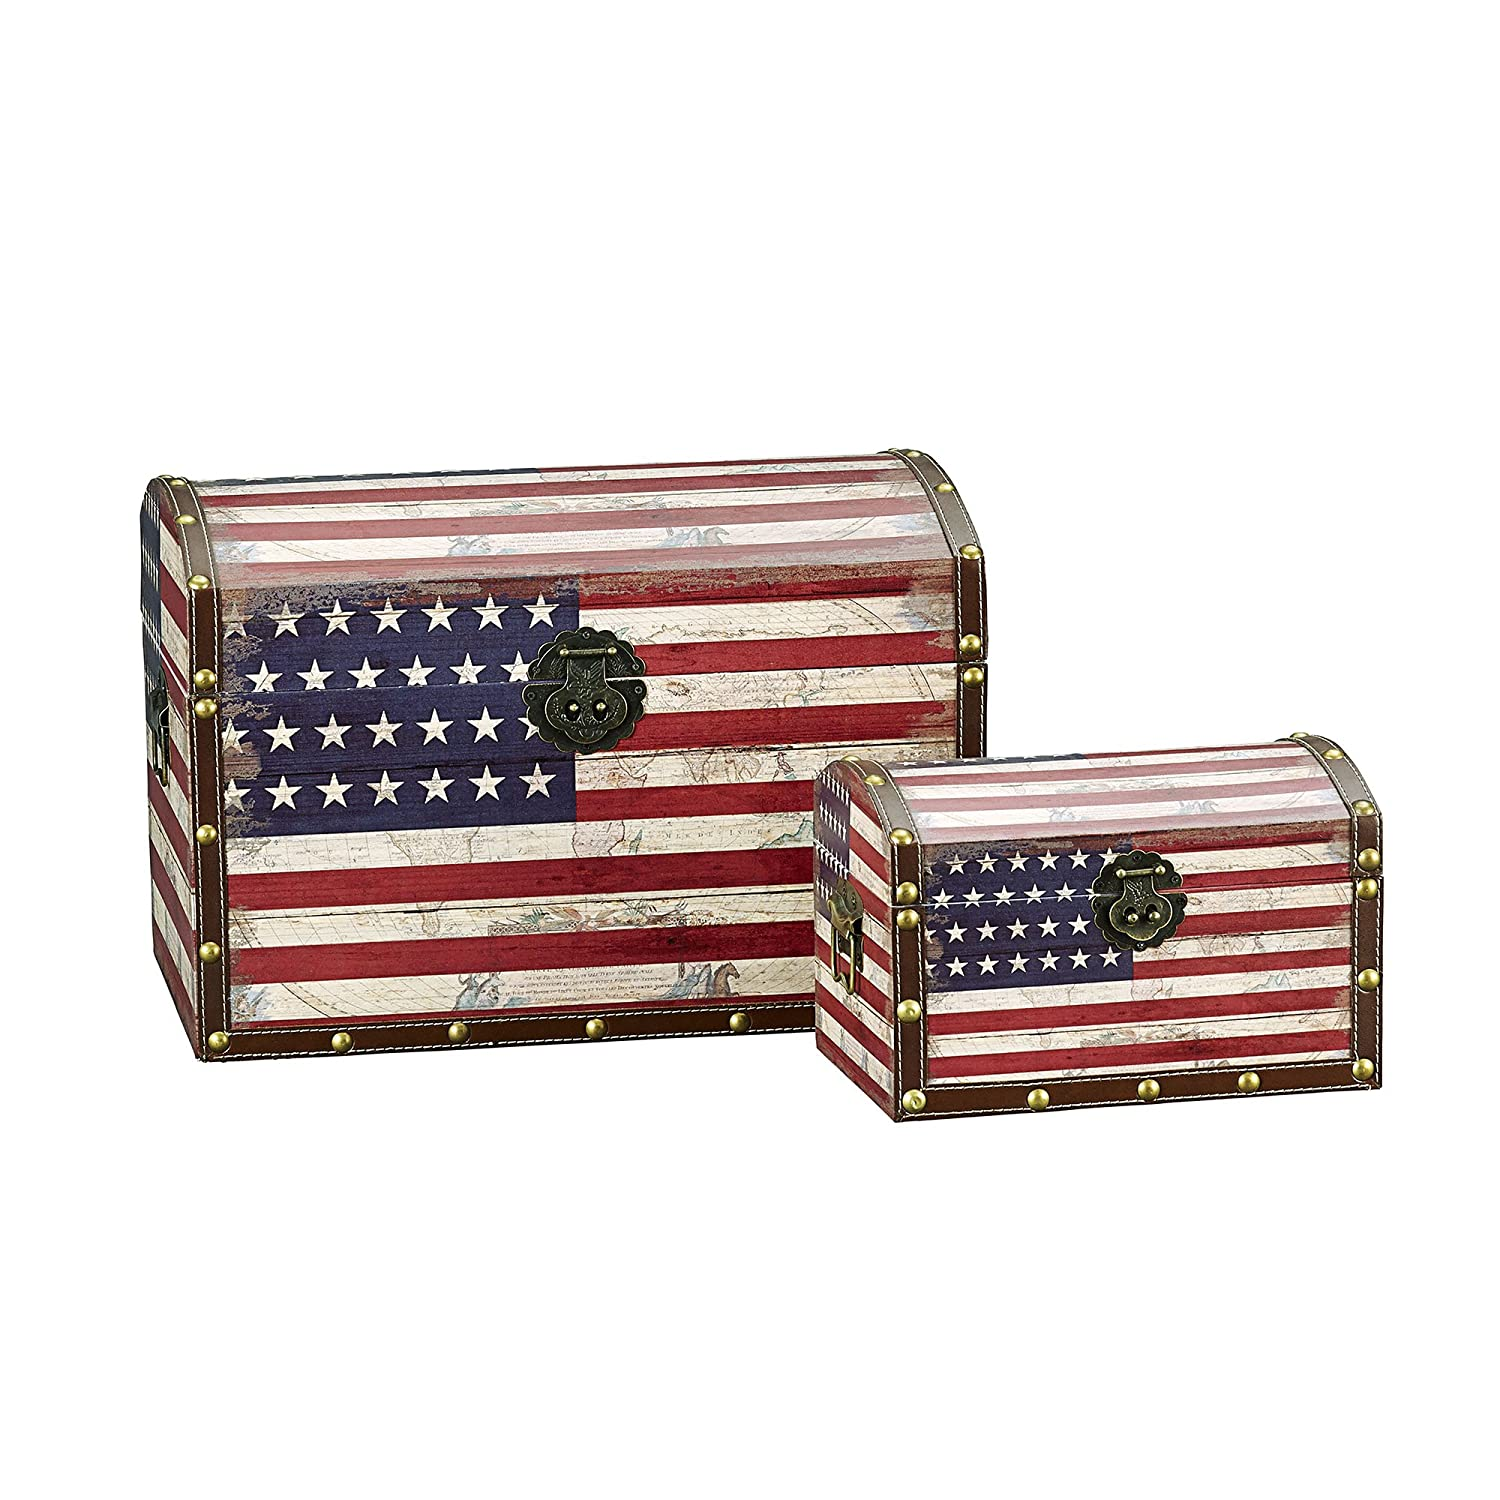 Amazon.com: Household Essentials Decorative Storage Trunk, American Flag  Design, Jumbo And Medium, Set Of 2: Kitchen U0026 Dining